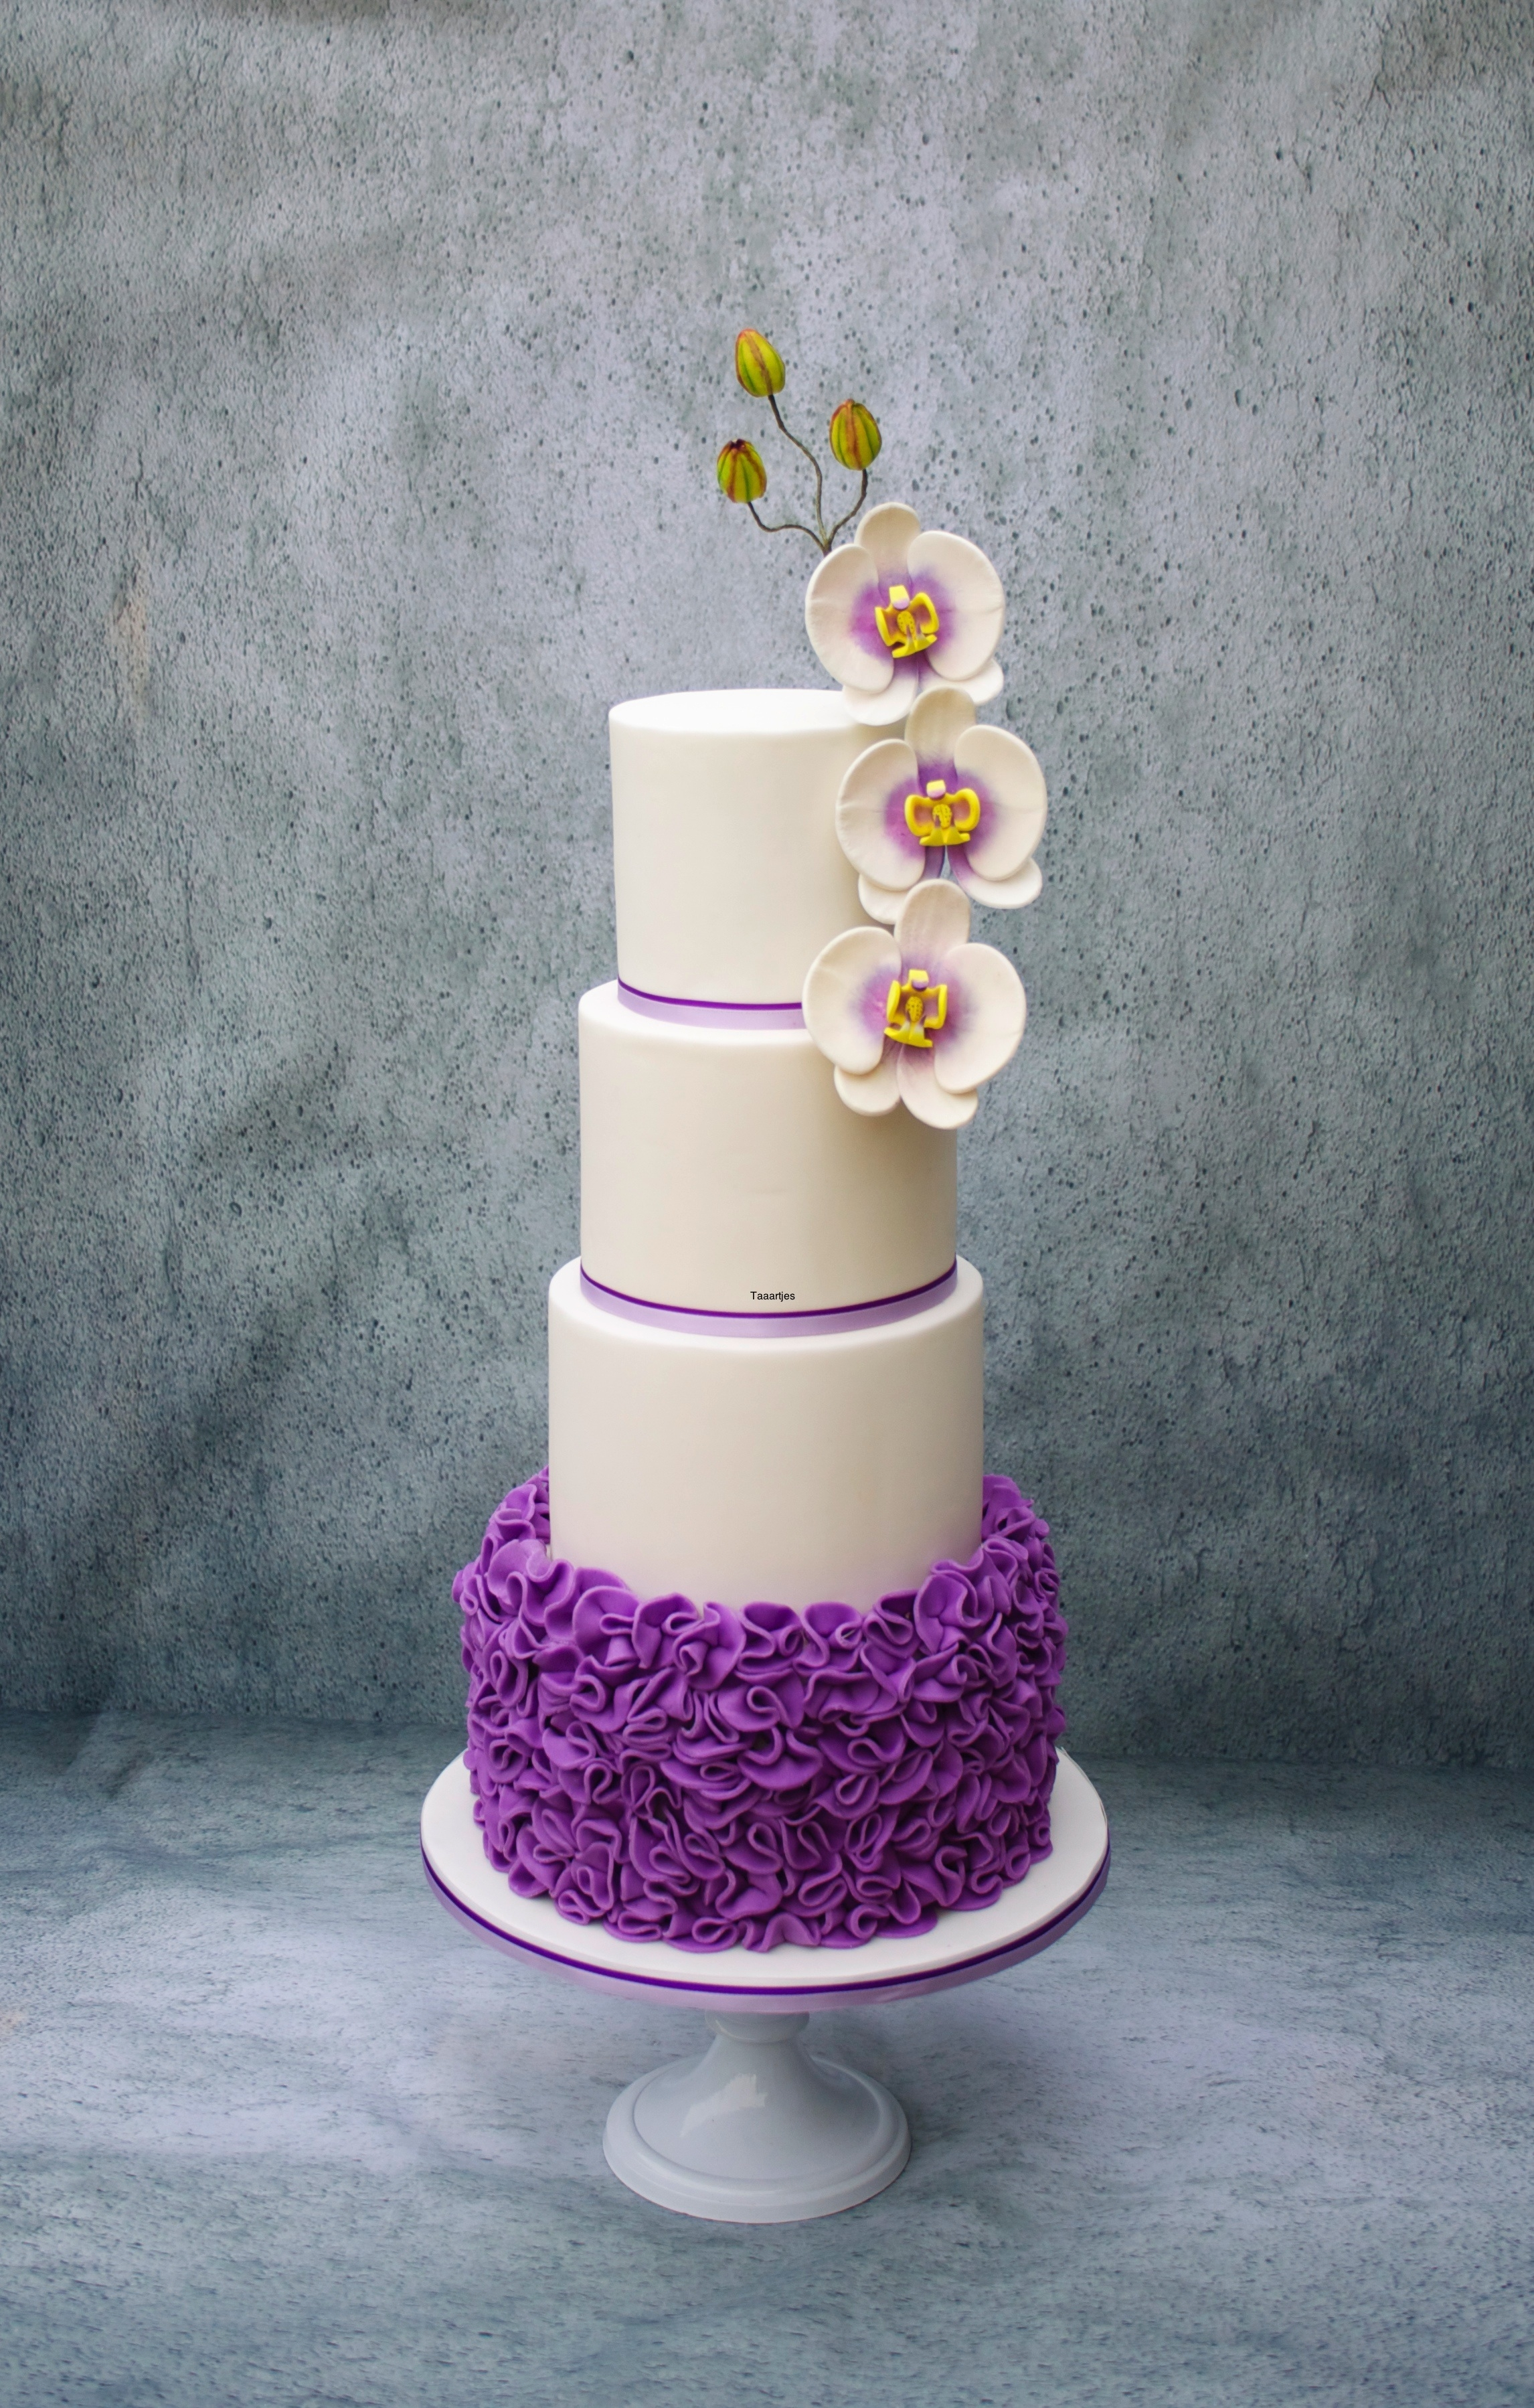 Wedding Cake With Ruffles And Handmade Orchids Wedding cake with ruffles and handmade orchids